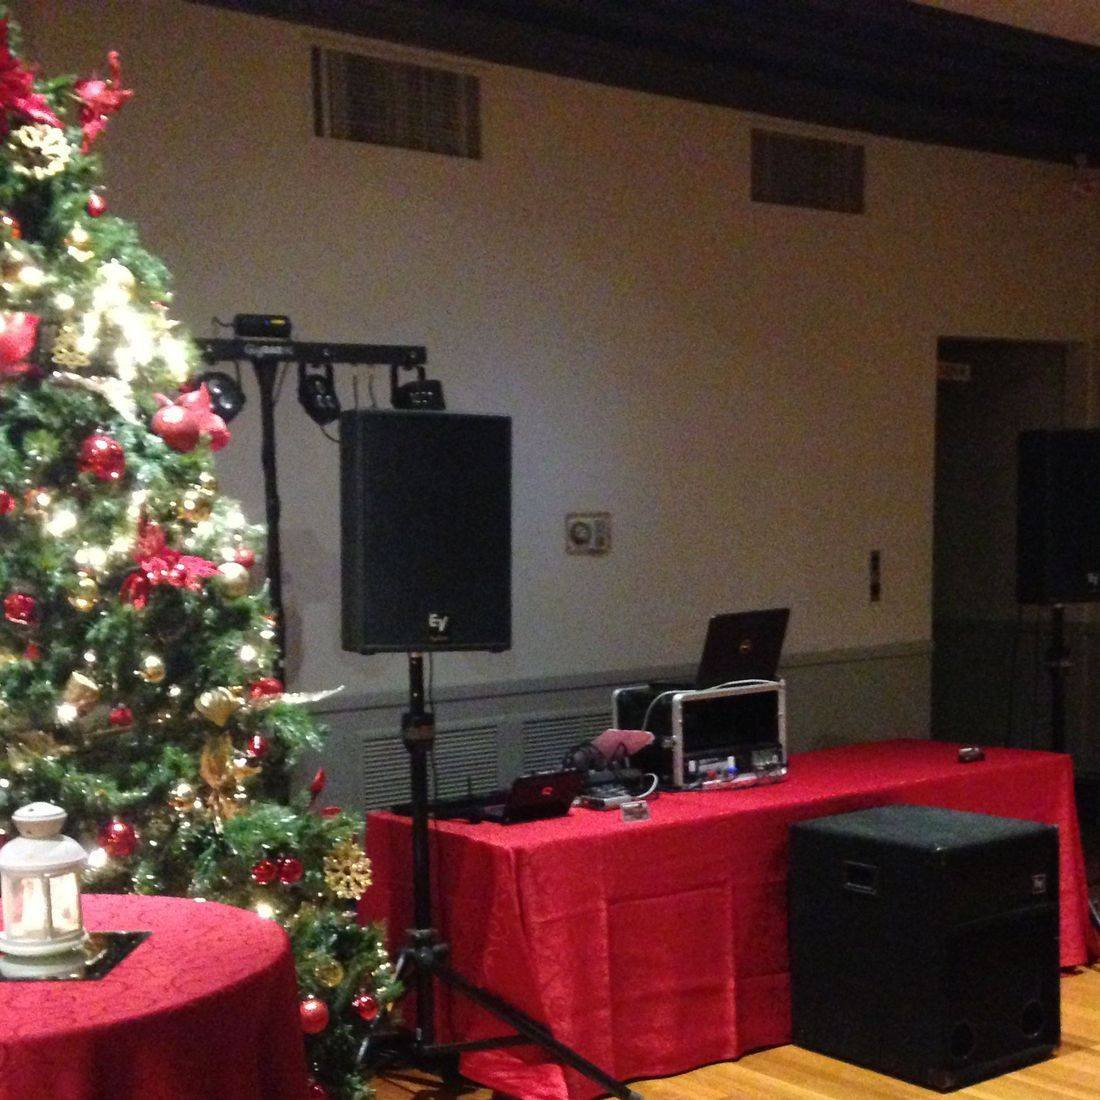 Mr. Productions DJ Service DJ'n a Christmas Party at the Scottish Rite in Hamilton.